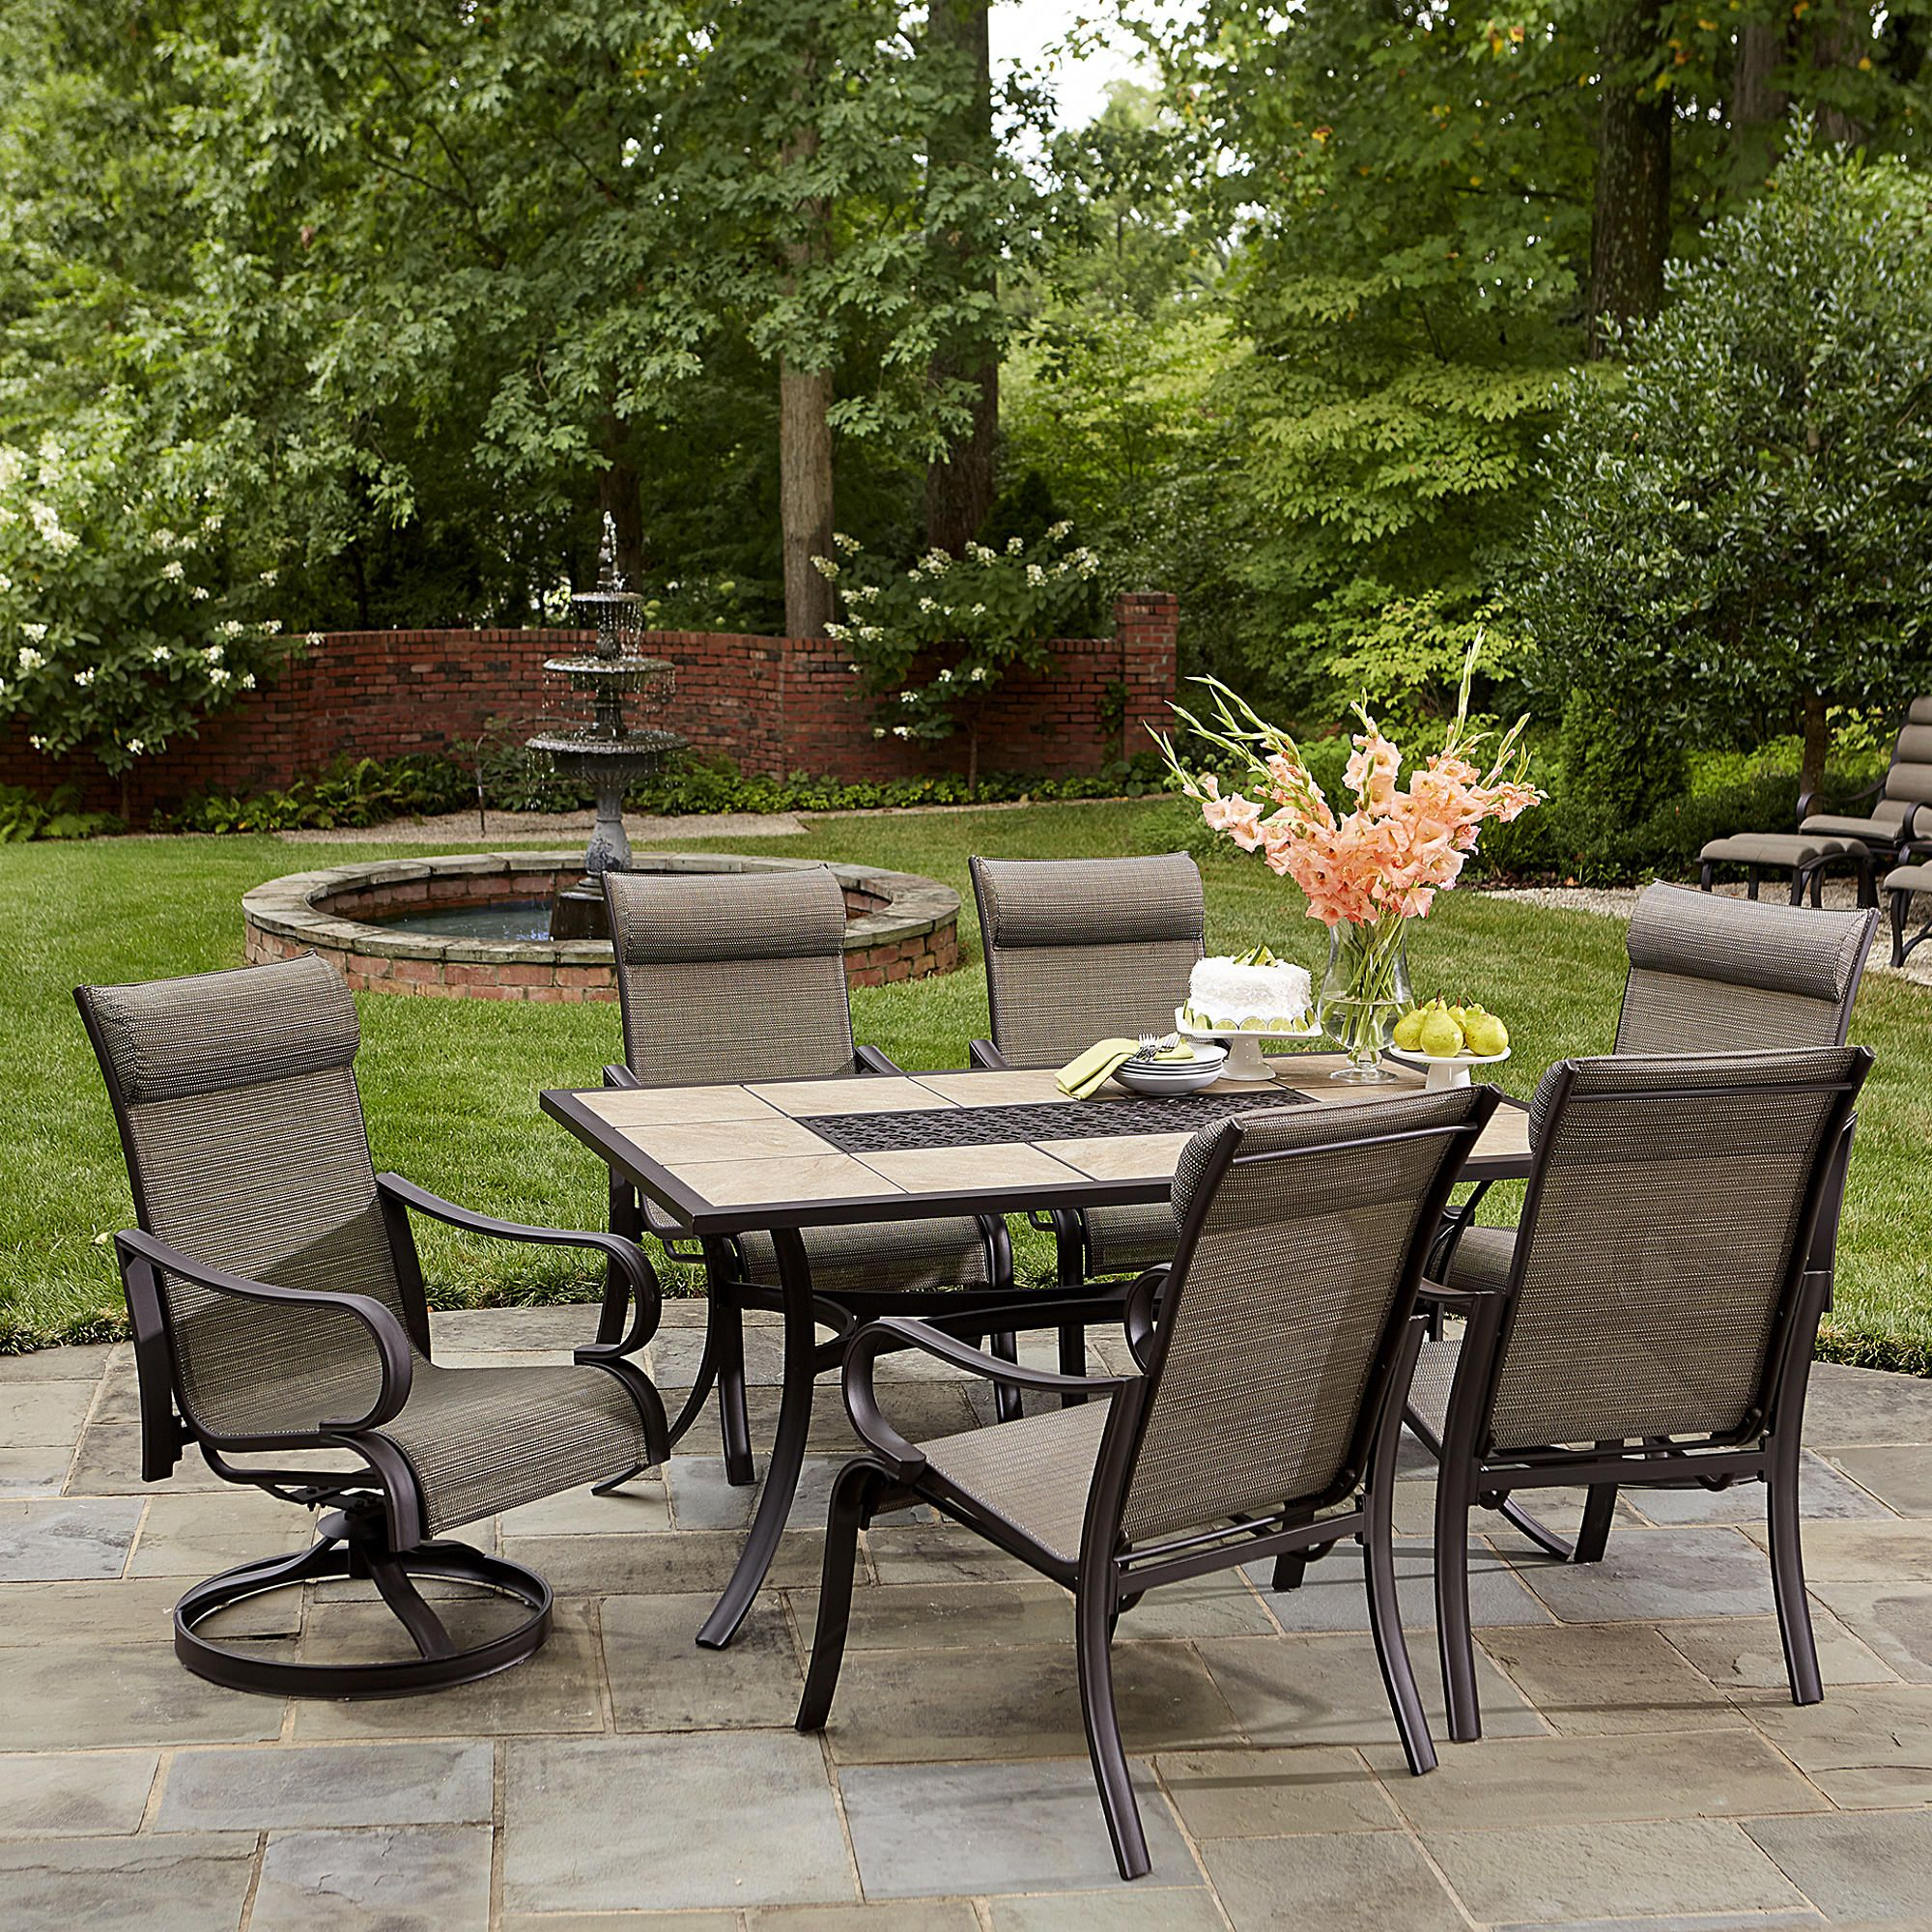 Kmart Com Patio Patio Set With Umbrella Backyard Design